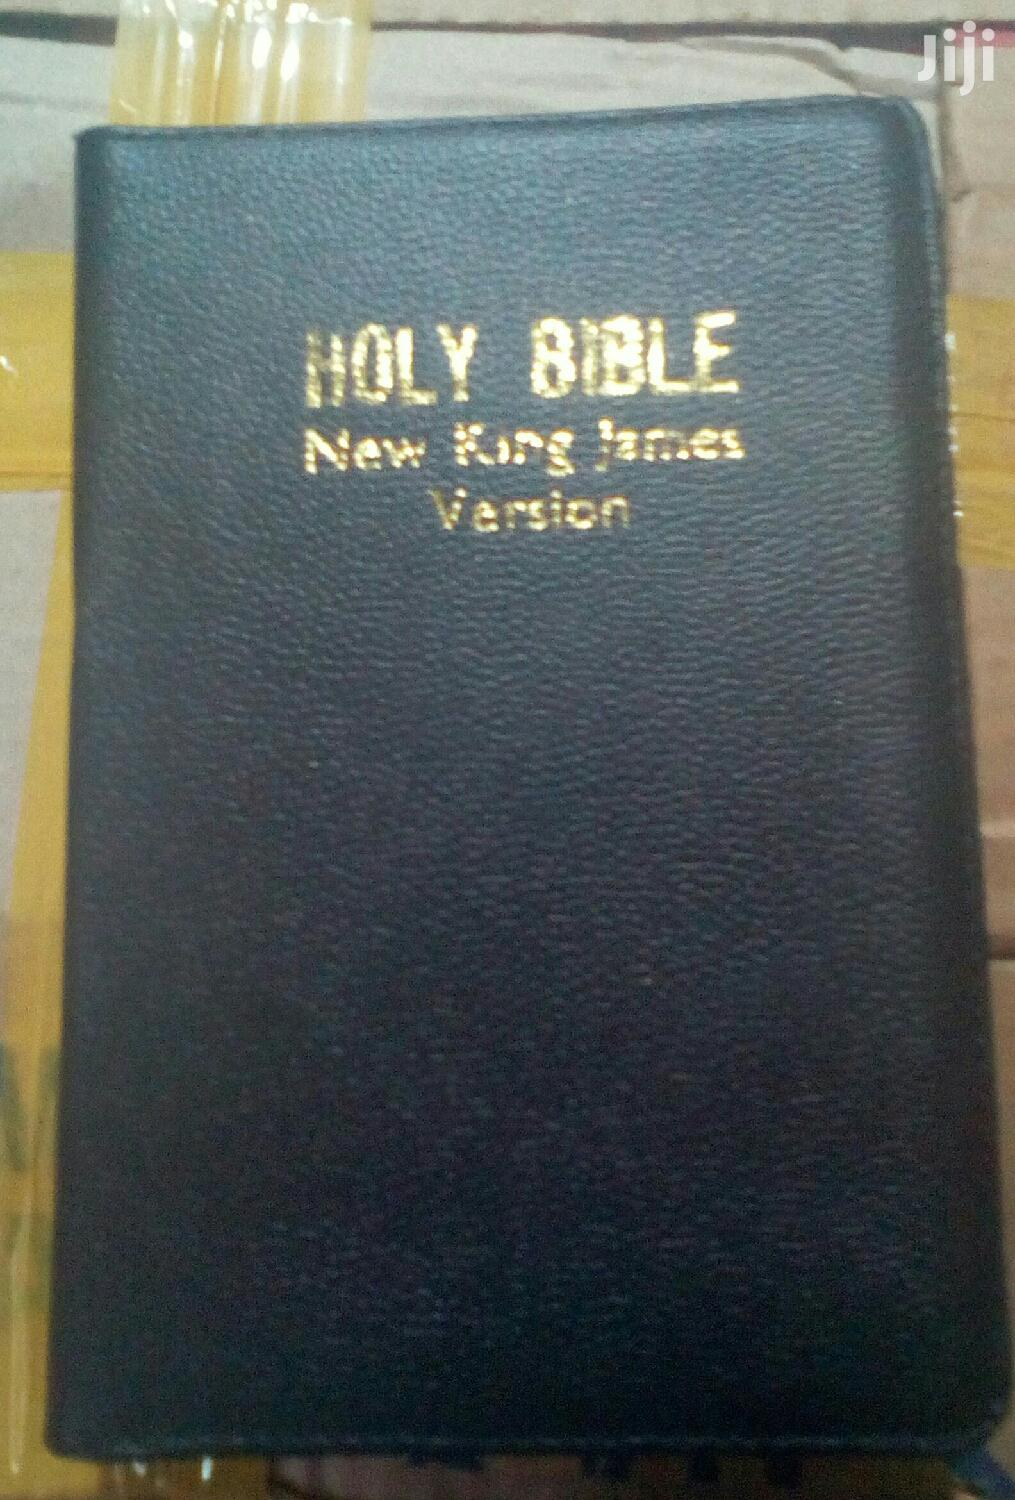 Holy Bible - New King James Version